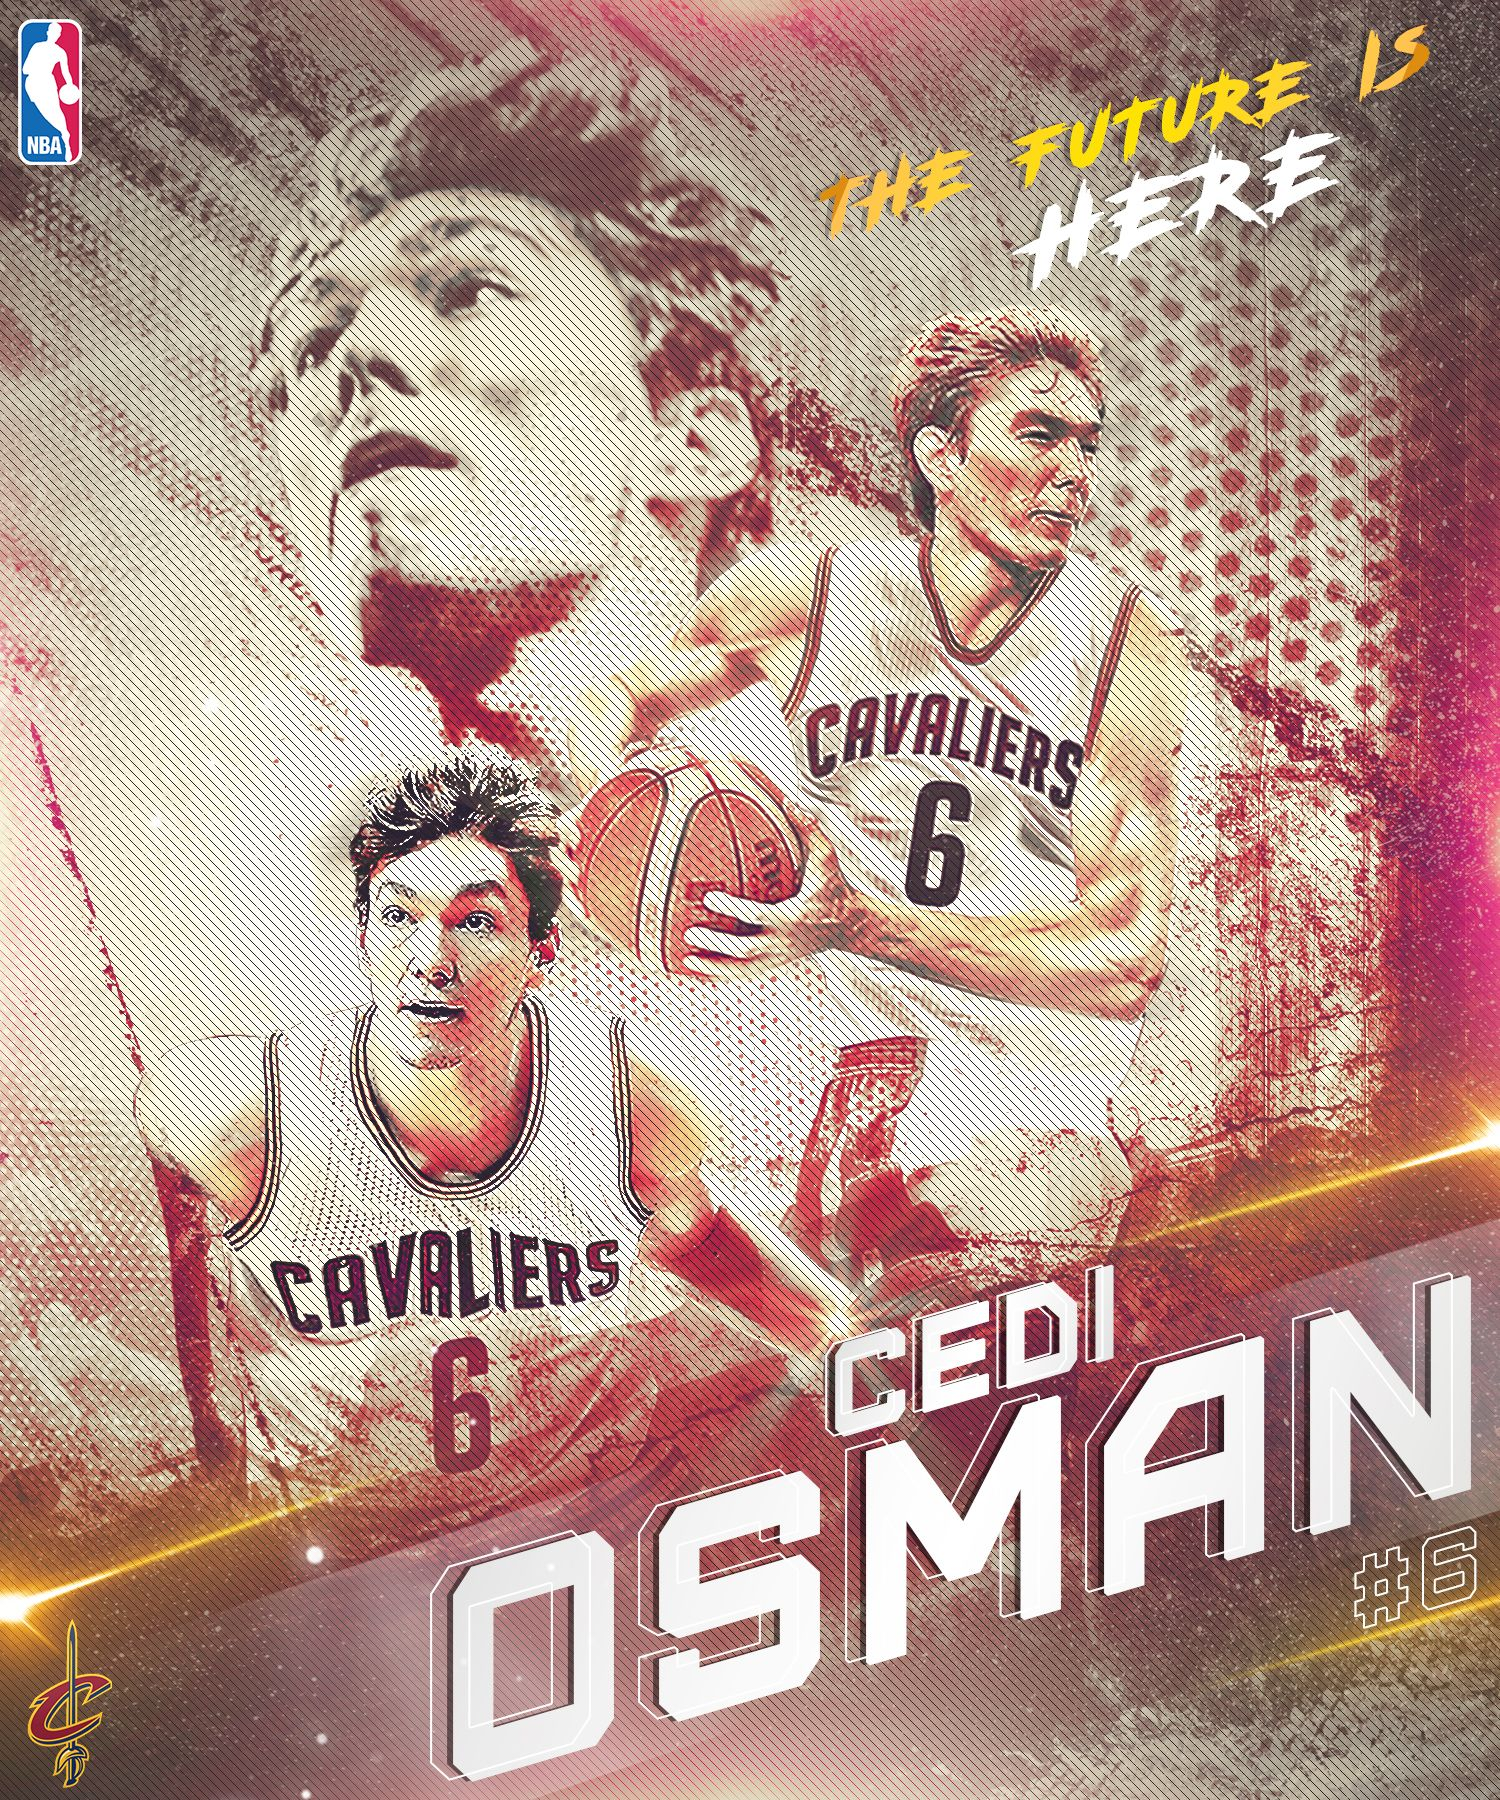 Cedi Osman Wallpaper by deployercreative on DeviantArt